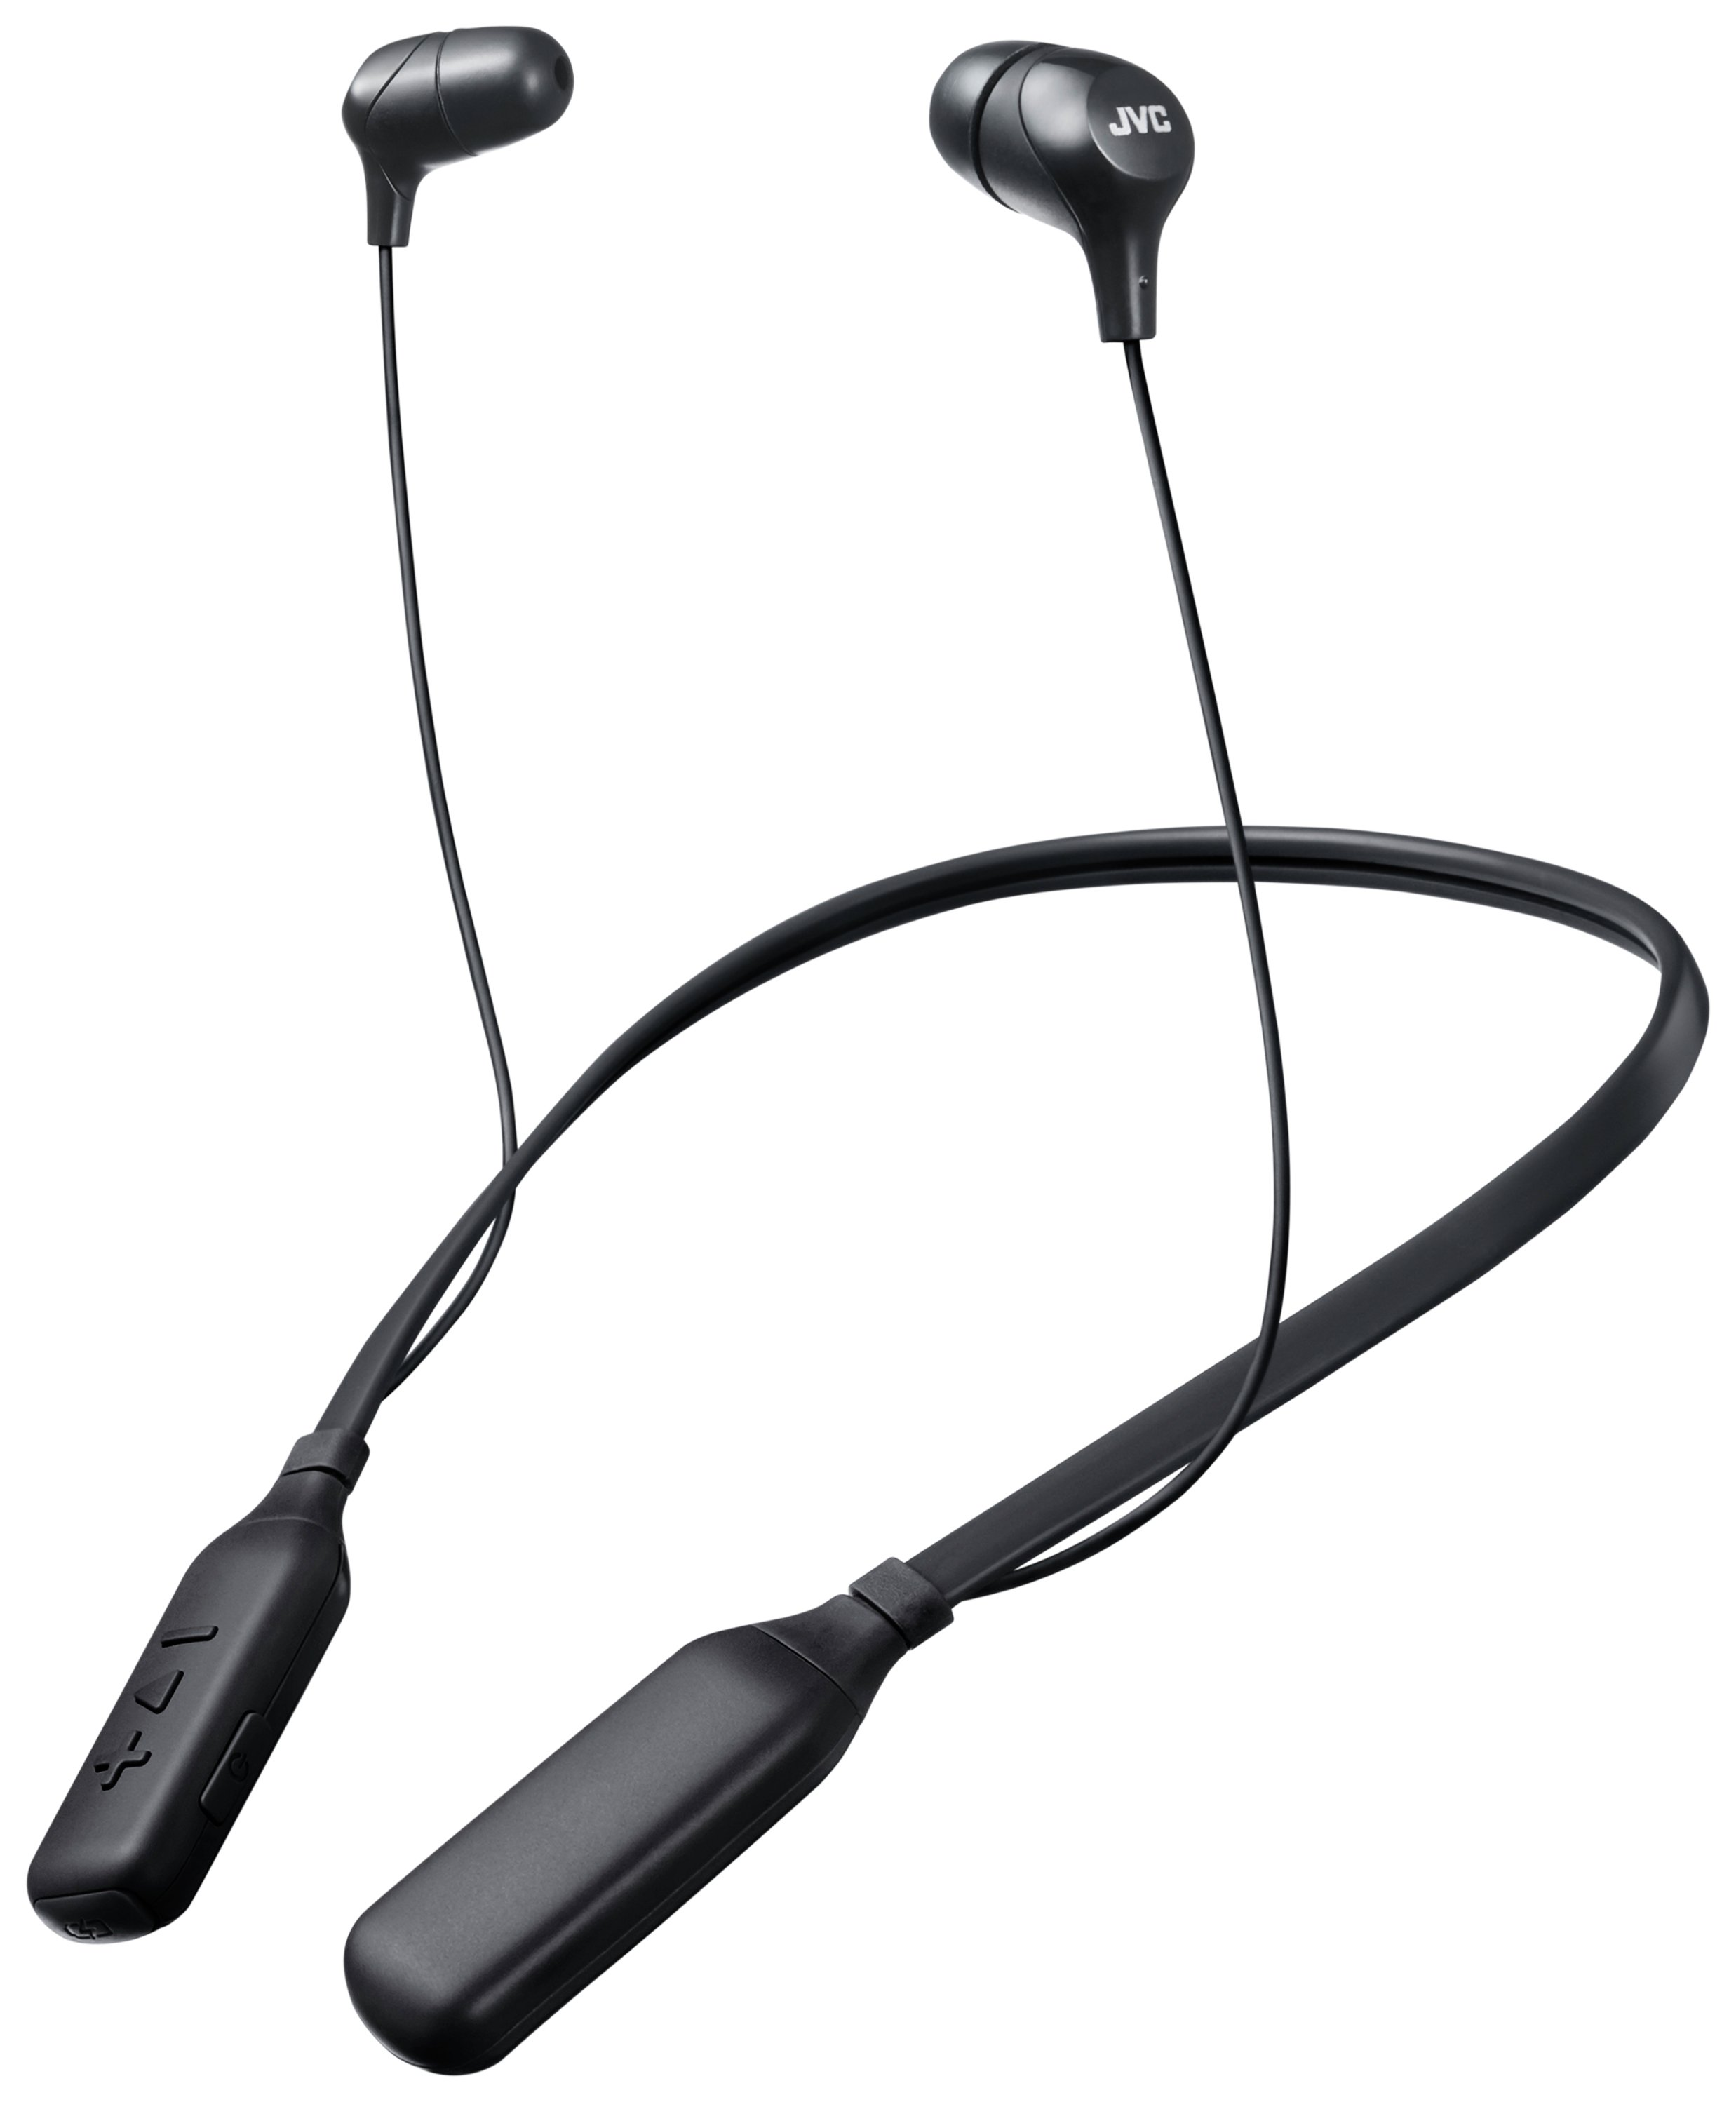 JVC HA-FX39BT Wireless In-Ear Headphones - Black